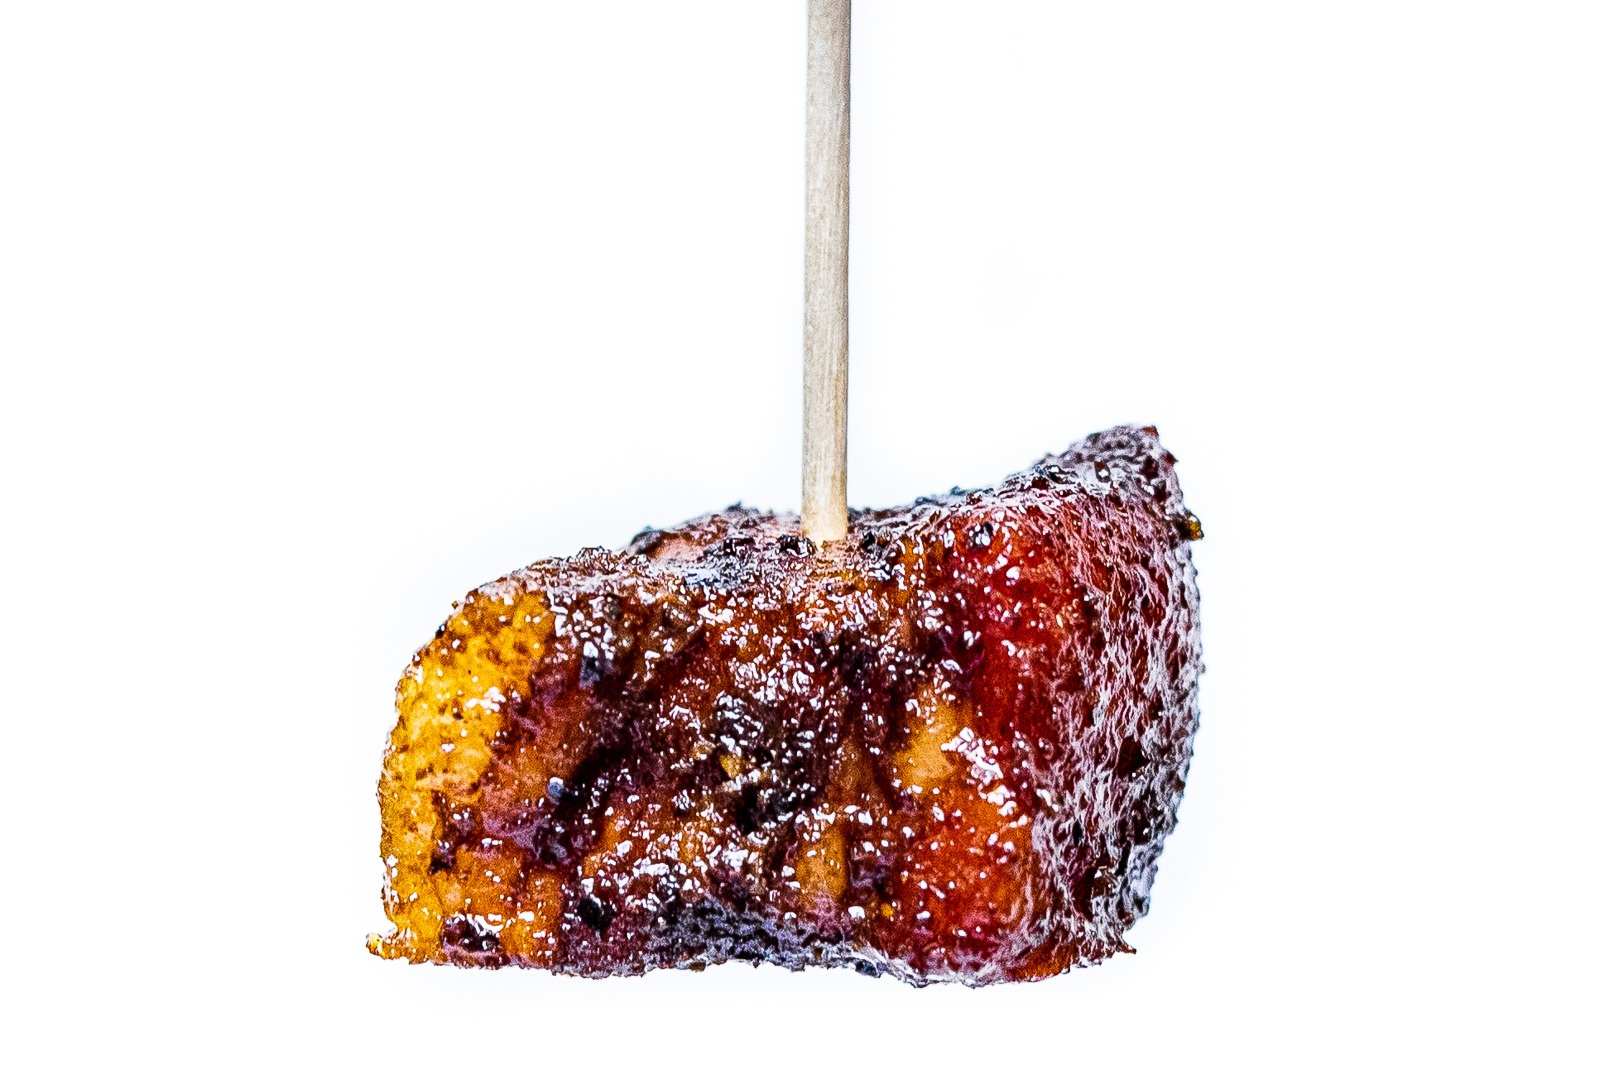 An adobo pork belly burn end on a toothpick